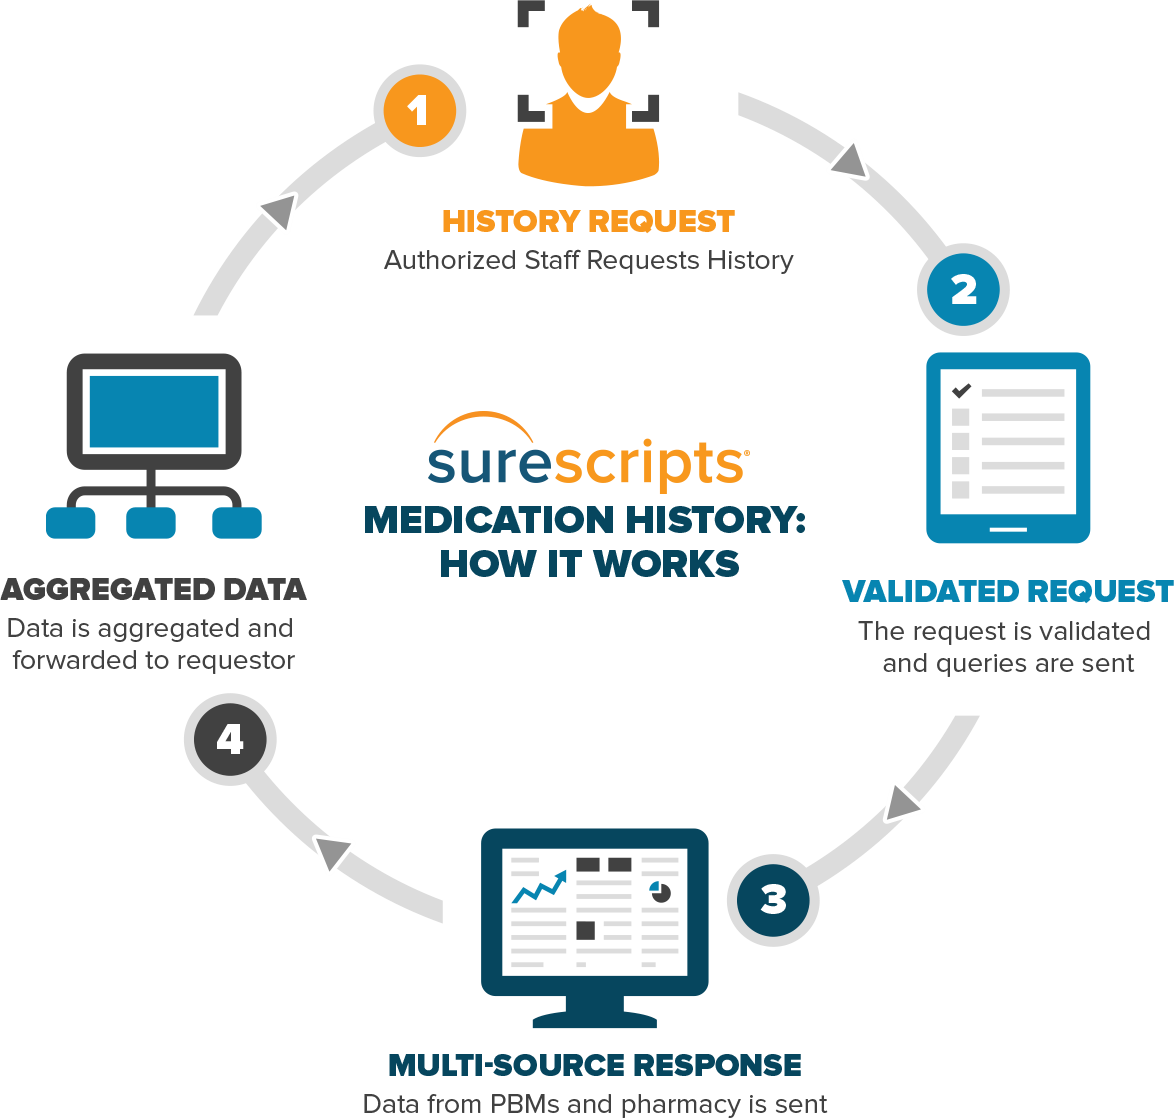 How Surescripts Patient Medication History Works